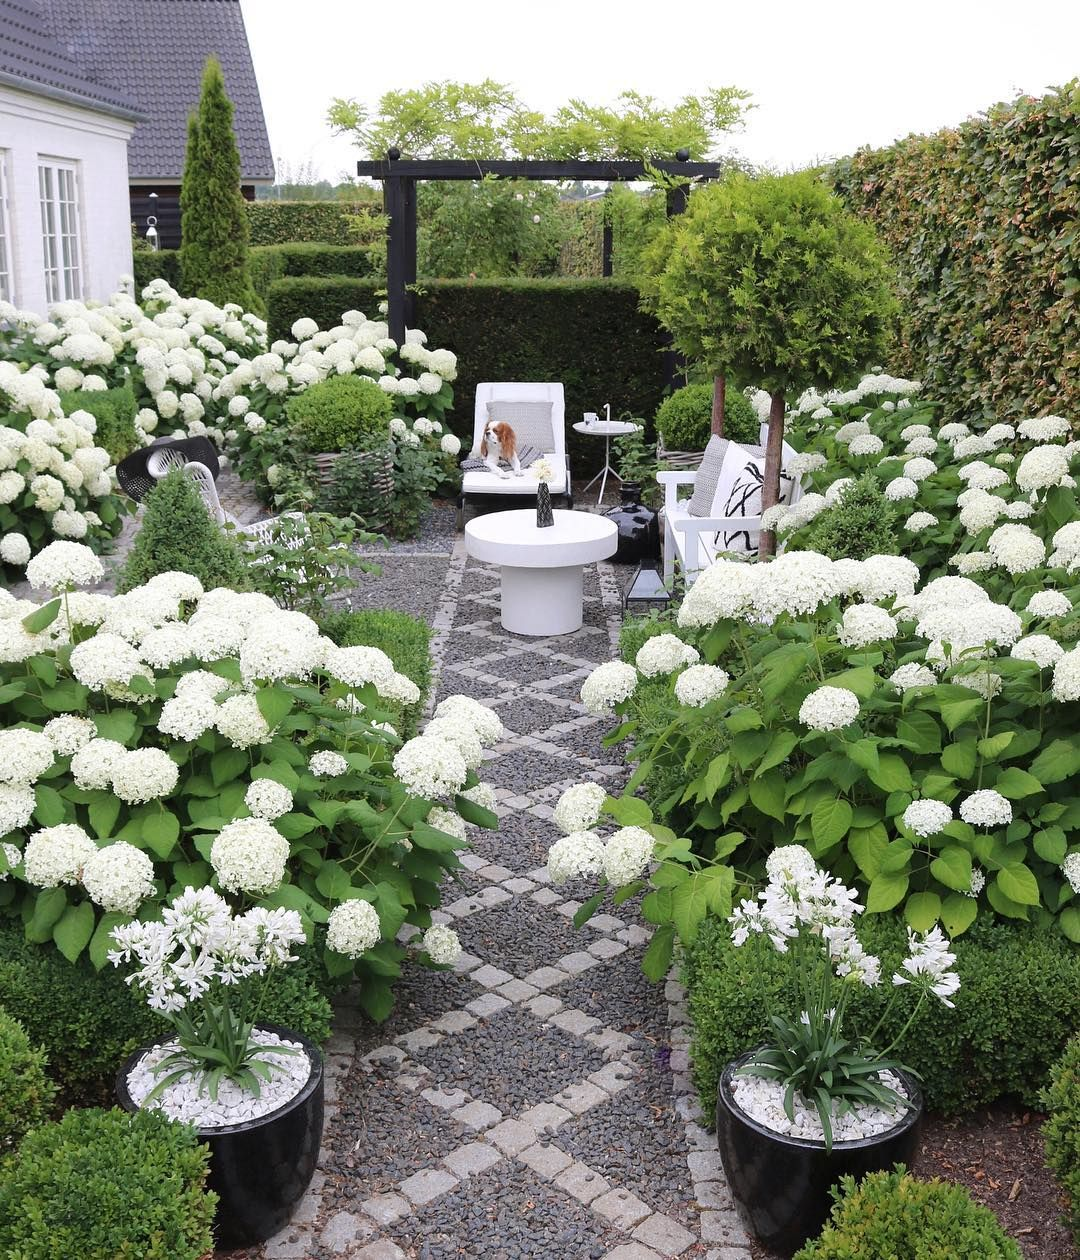 Gina On Instagram Sharing A 2018 Favorite From My Hydrangea Annabelle Garden In Full Bloom Enjoy Your Ev White Gardens Garden Landscape Design Dream Garden